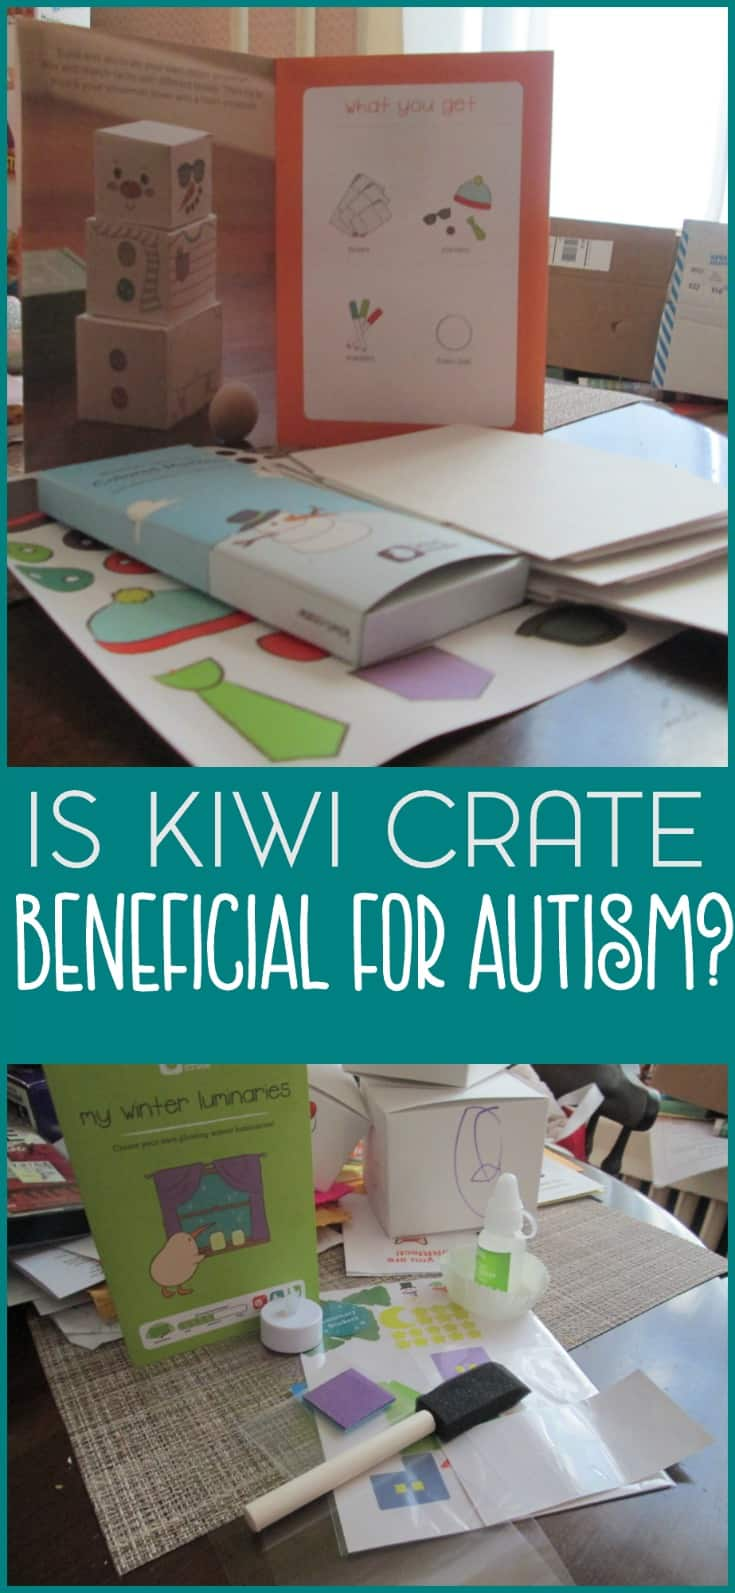 There are a lot of subscription boxes out there but are any of them suitable for autistic kids?